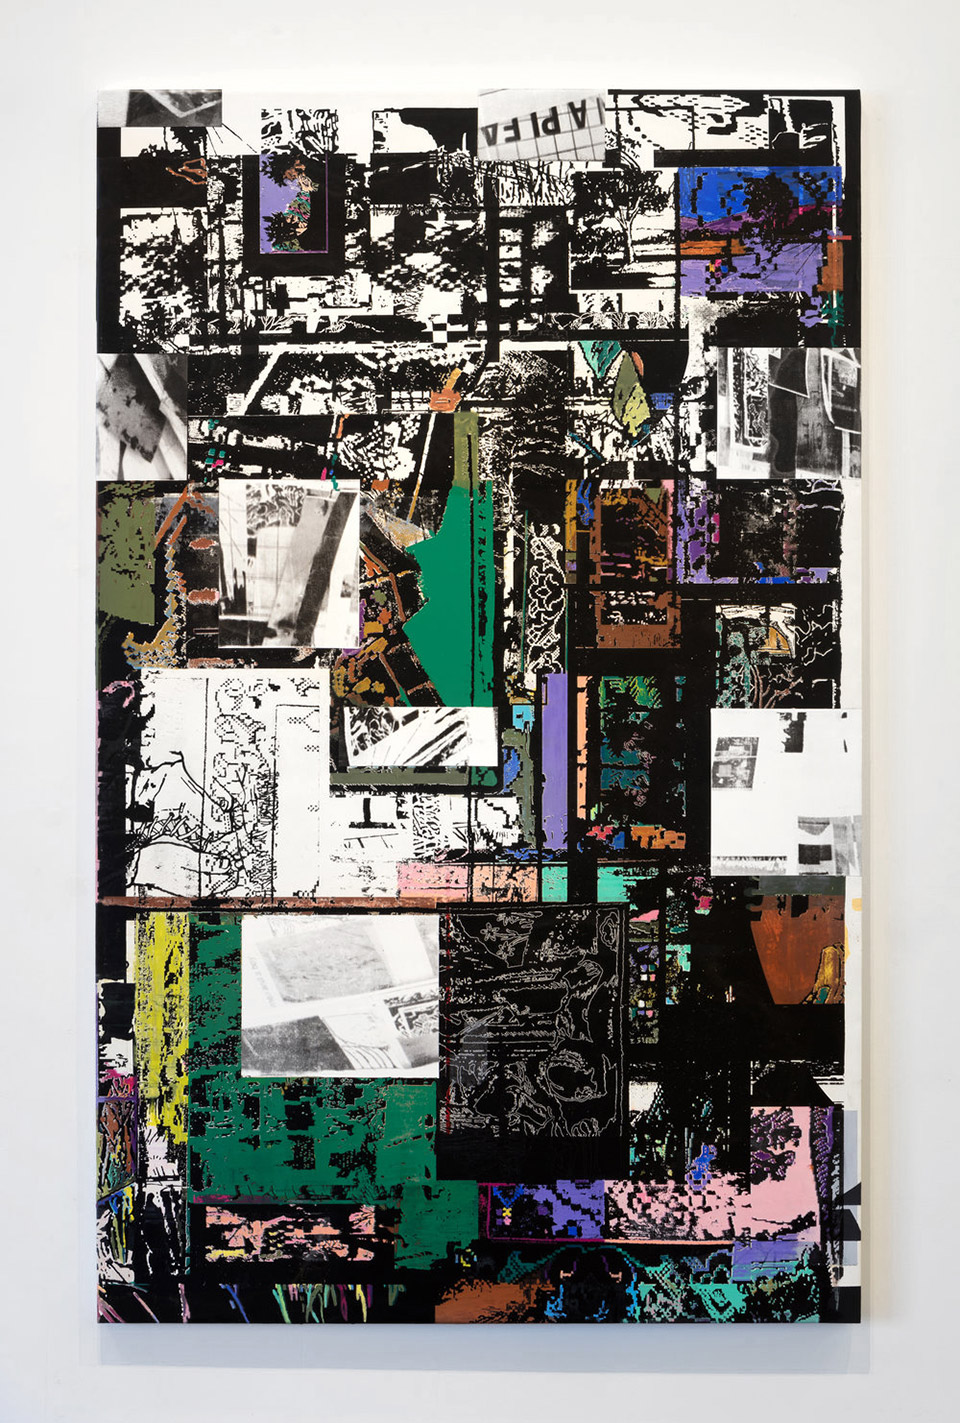 Prayer Rug, U.S. Marines Field Manual, New York Times Clippings from 2017, Grandmothers Life Magazines, Unknown Family Photos, Complimentary Auto Body Shop Floor Mat, Downloaded Perspective Grid Printed on Acetate (A Still Life),  2017, Flashe, acrylic and water-soluble pastel on canvas, 48 x 77.5 inches